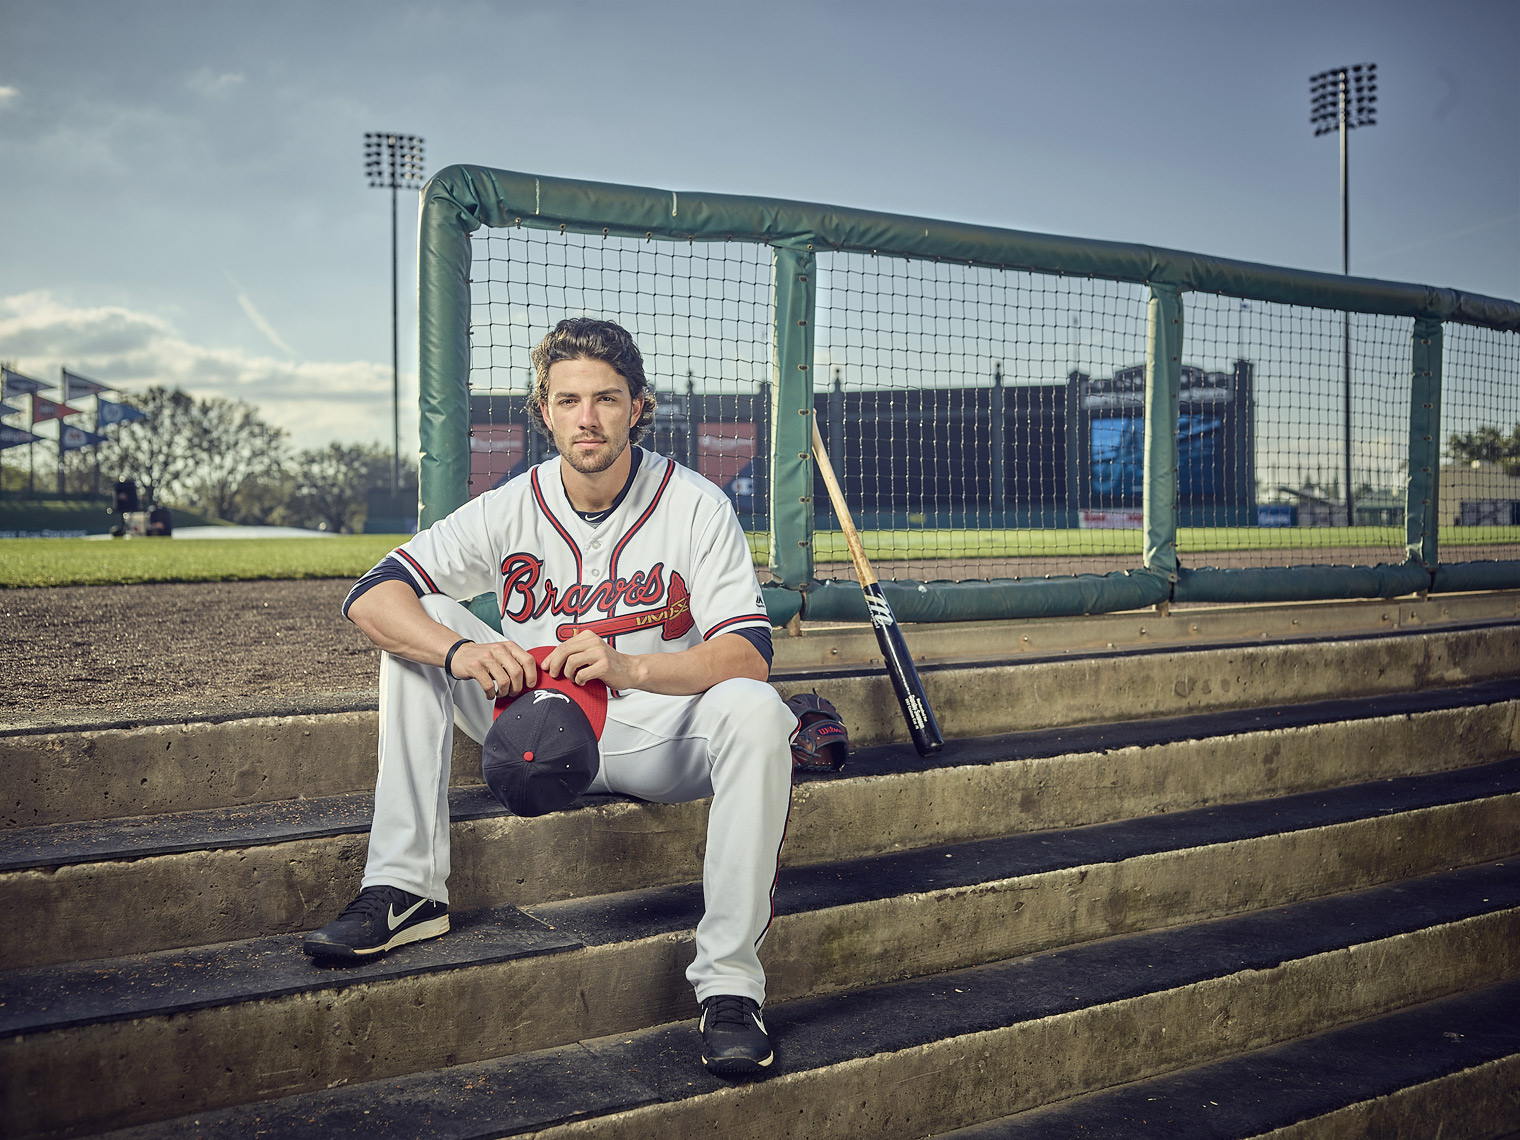 Dansby Swanson | Atlanta Braves Major League Baseball player |